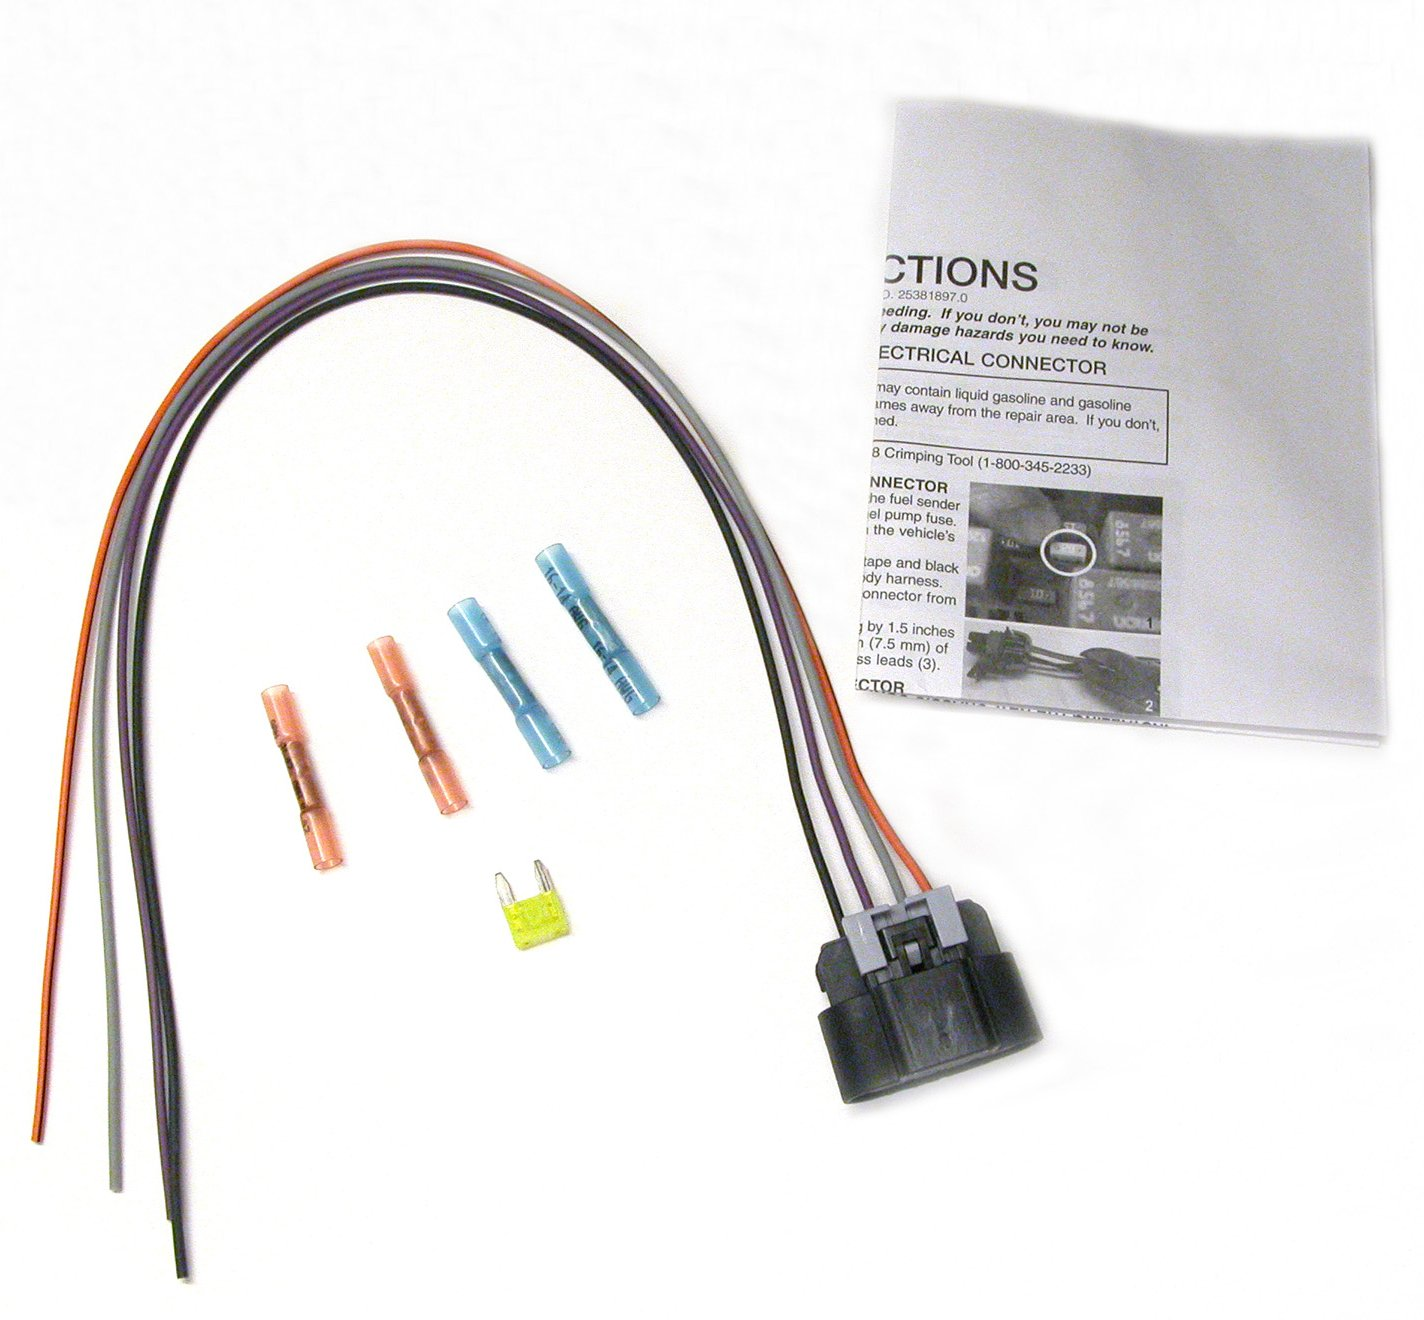 71Grf8PrFuL._SL1424_ amazon com delphi fa10003 fuel pump wiring harness automotive bosch fuel pump wiring harness gm at crackthecode.co